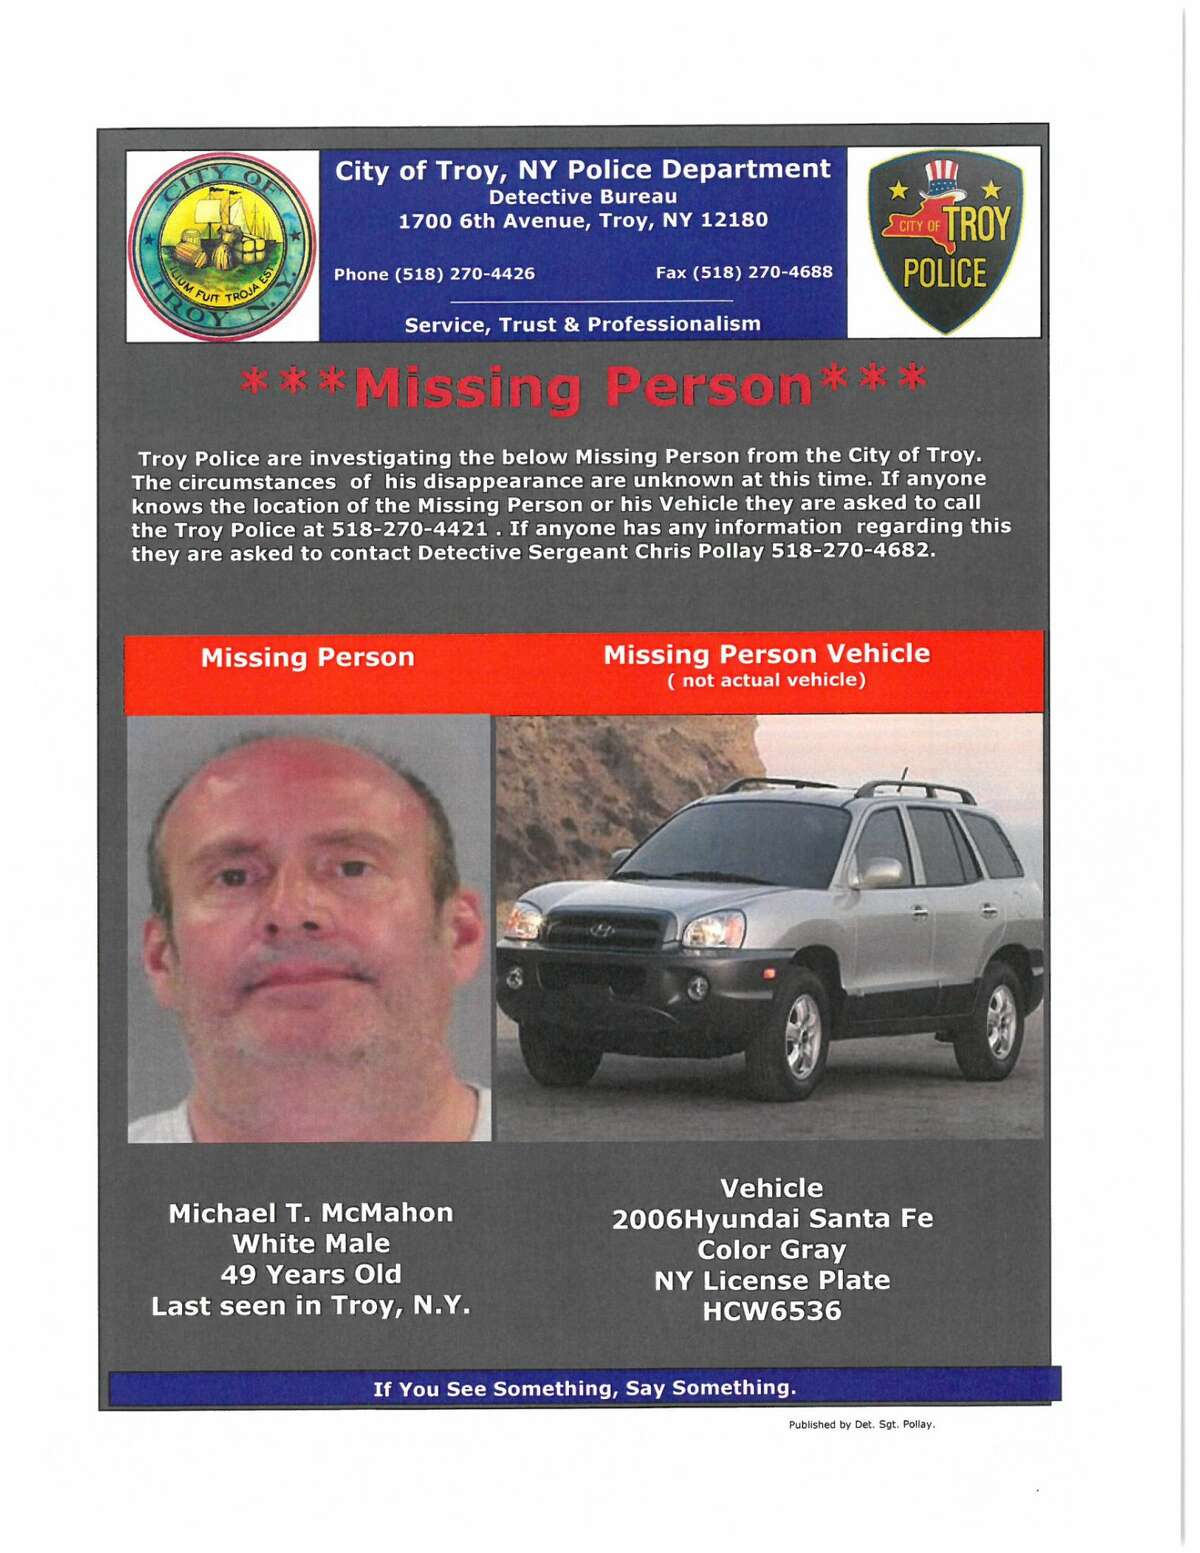 Troy police say they hope the public can help them find Michael T. McMahon, 49, who appears to have last interacted with someone in early January.